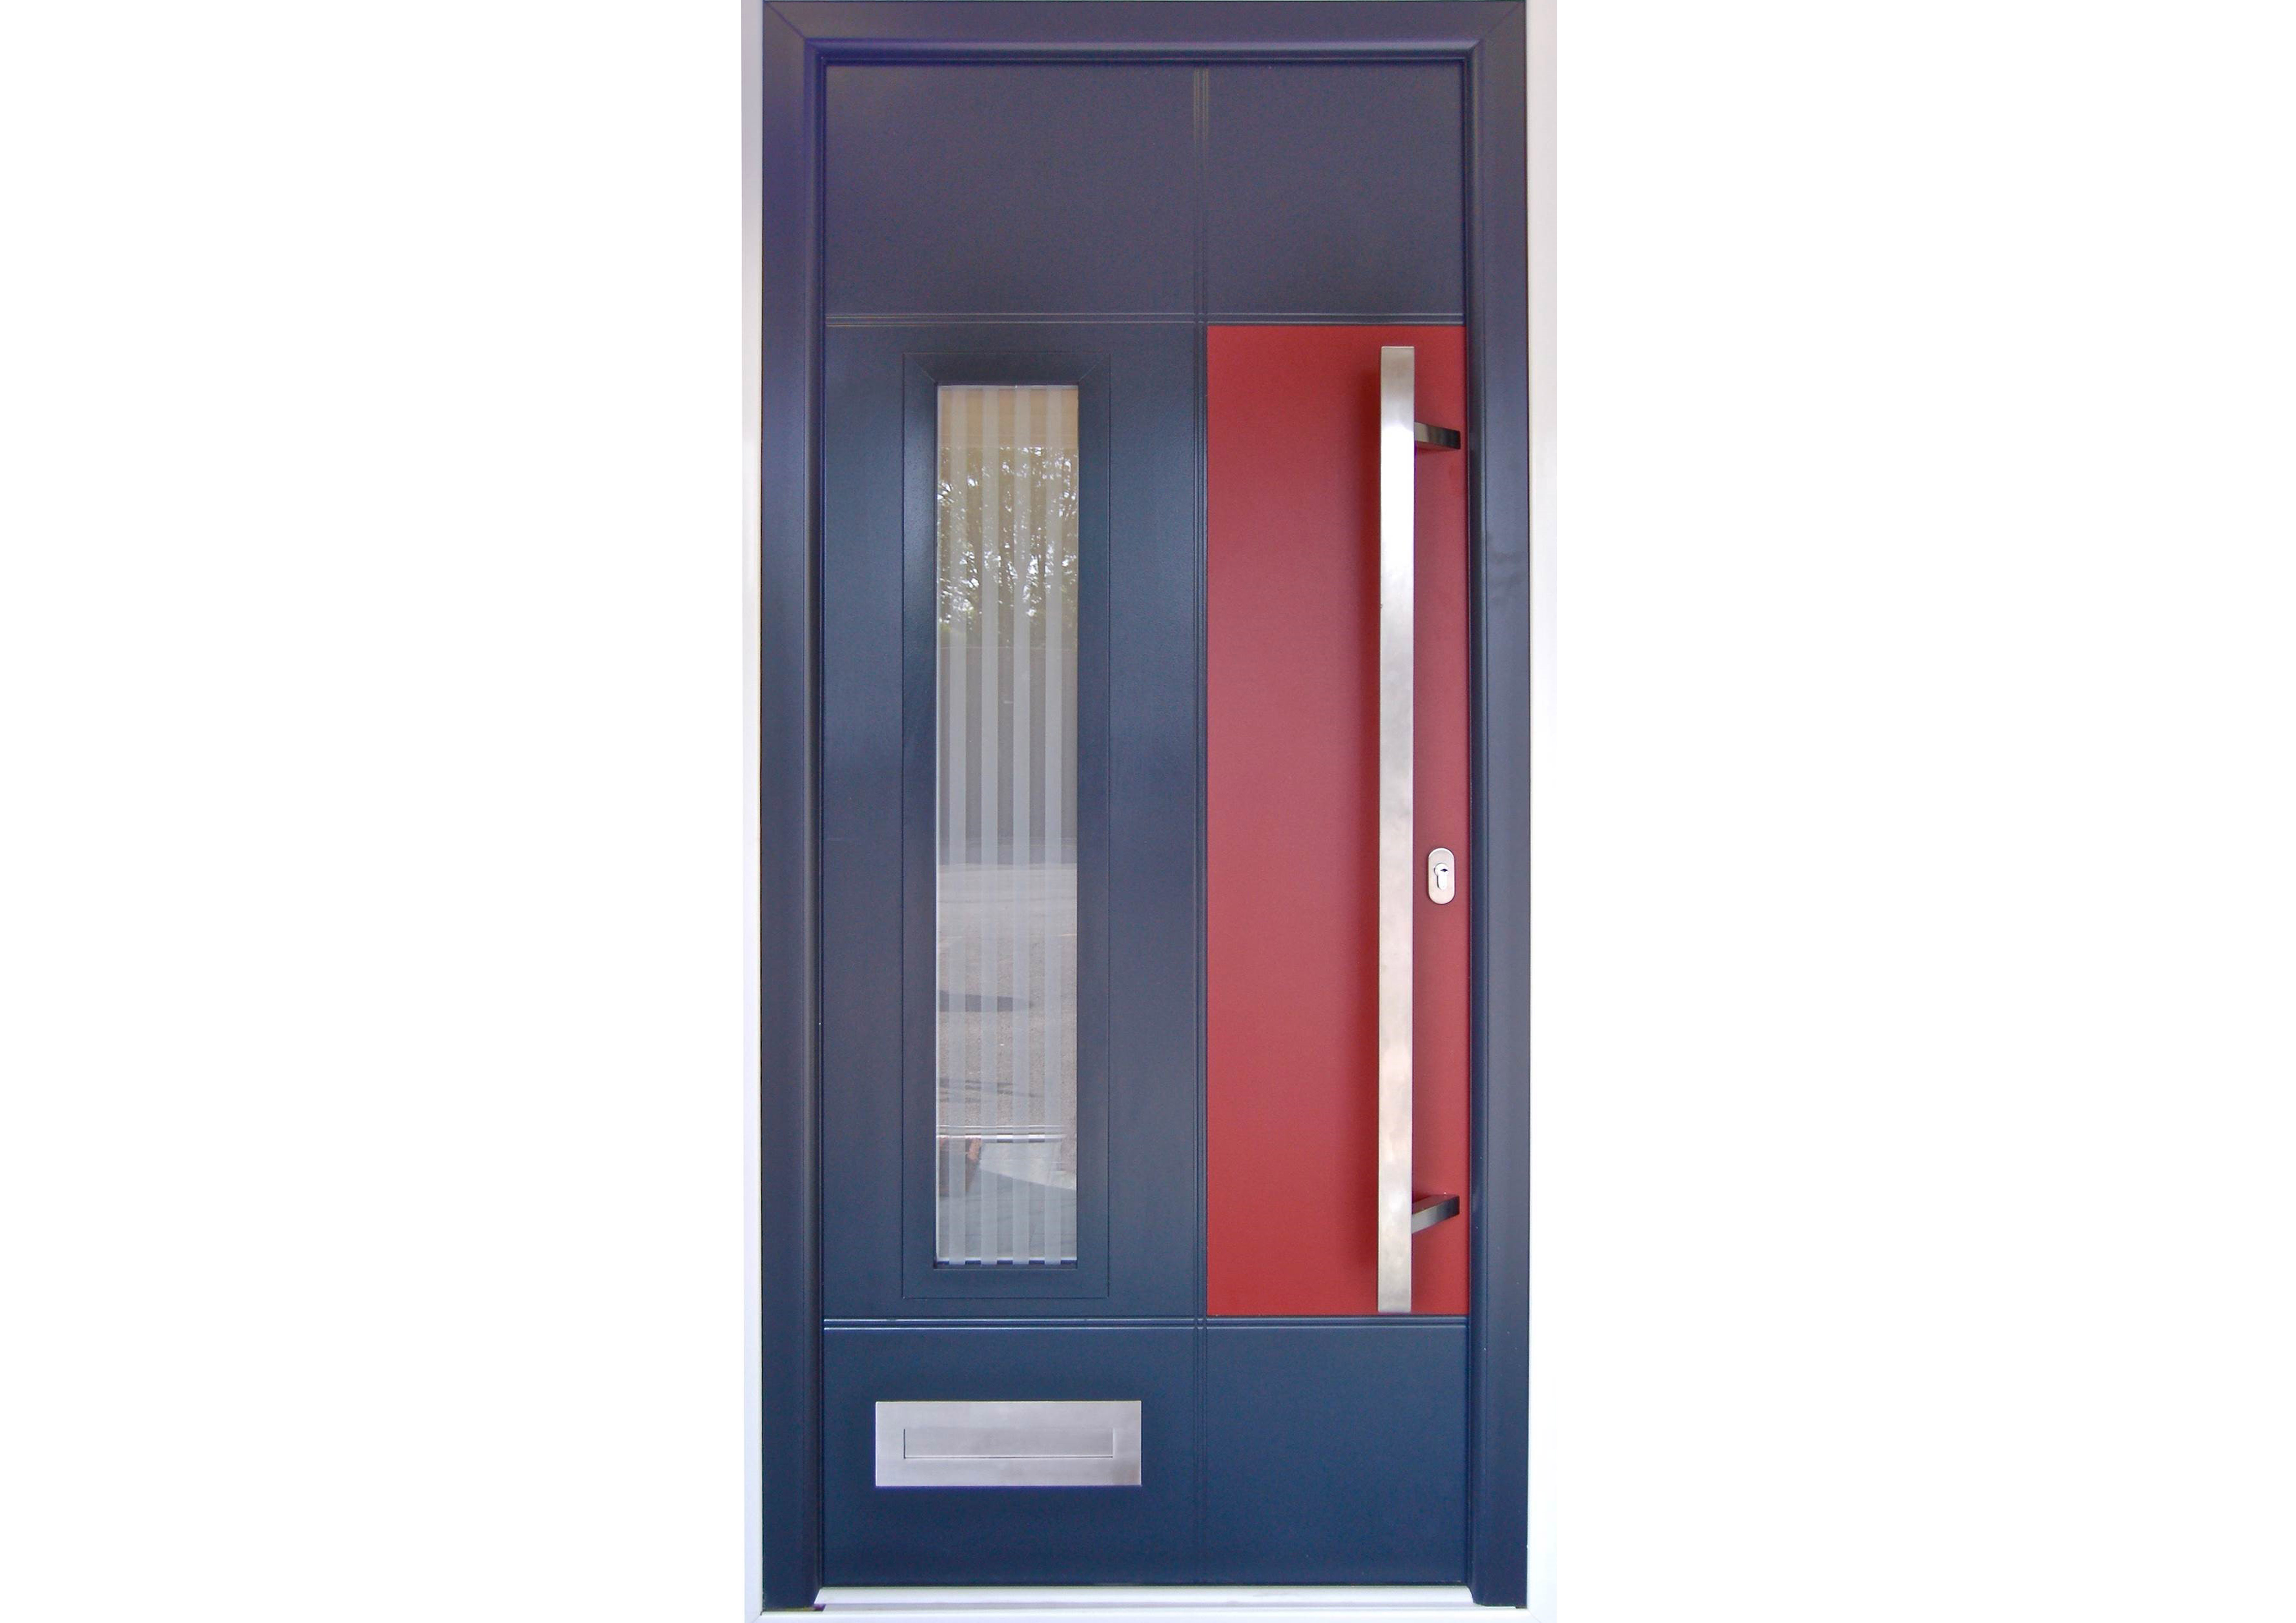 What styles of doors do customers want